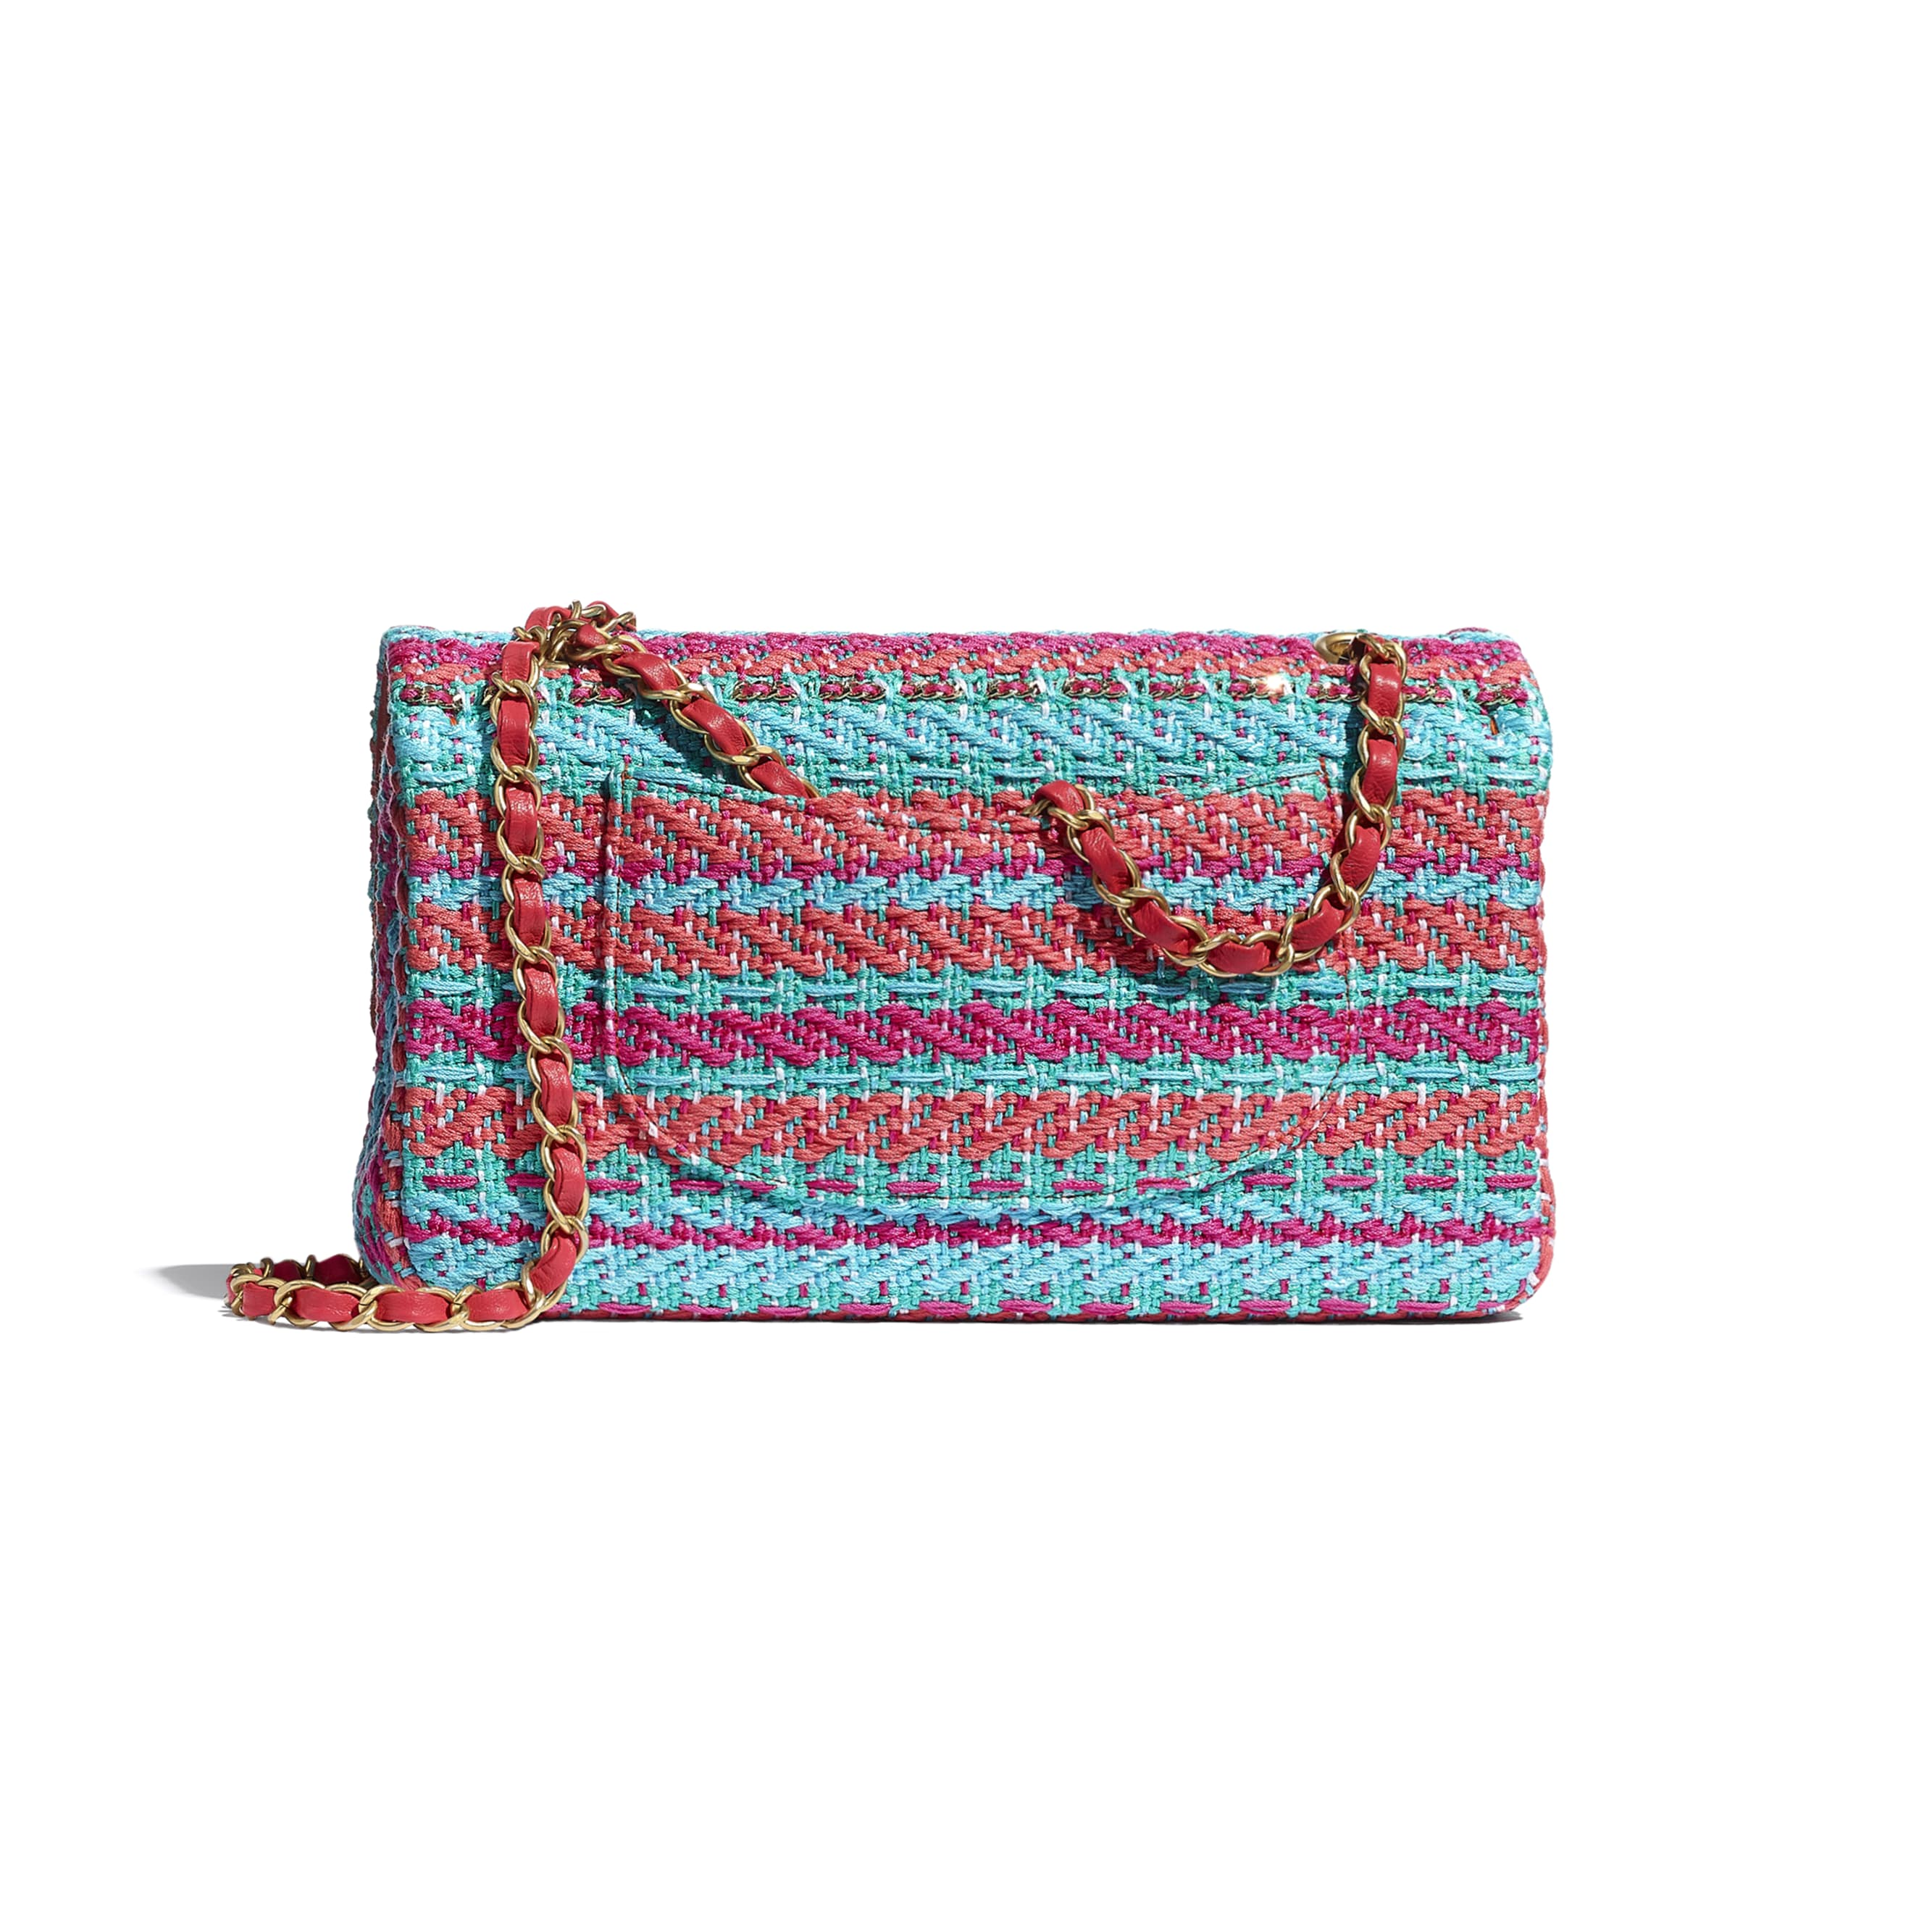 Flap Bag - Red, Fuchsia & Blue - Cotton, Mixed Fibers & Gold-Tone Metal - CHANEL - Alternative view - see standard sized version